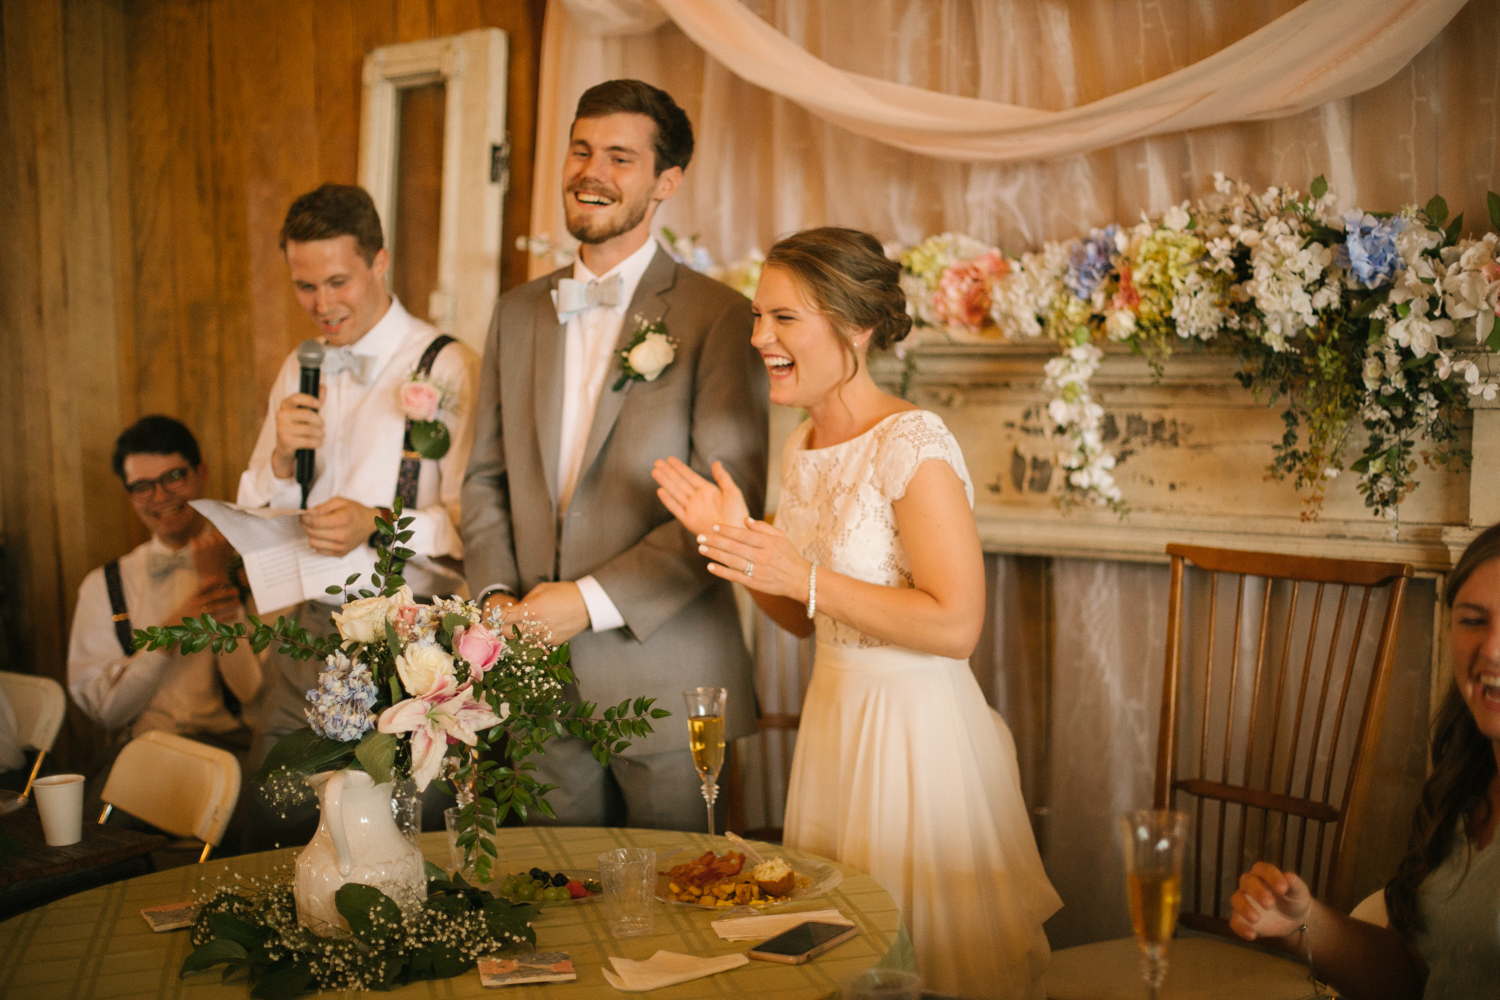 2019.06.01_CraskWedding_Starks-202.jpg